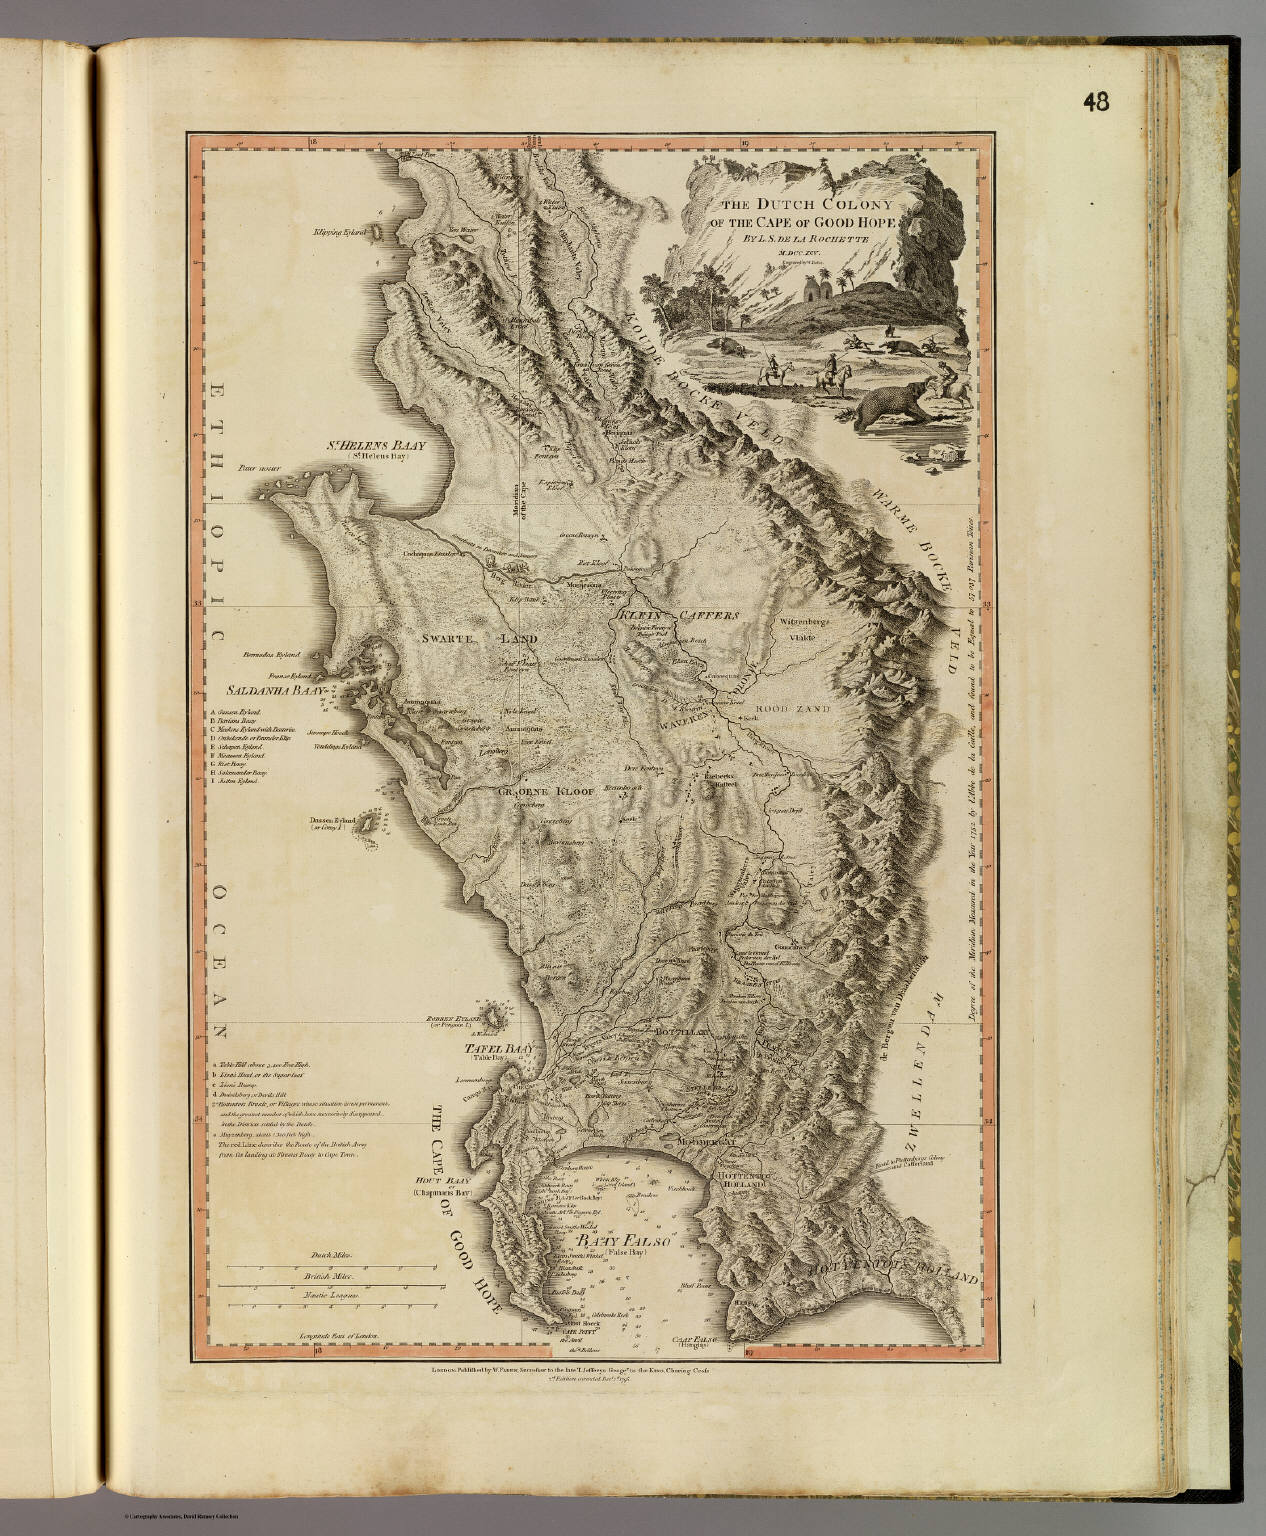 Cape of Good Hope. - David Rumsey Historical Map Collection